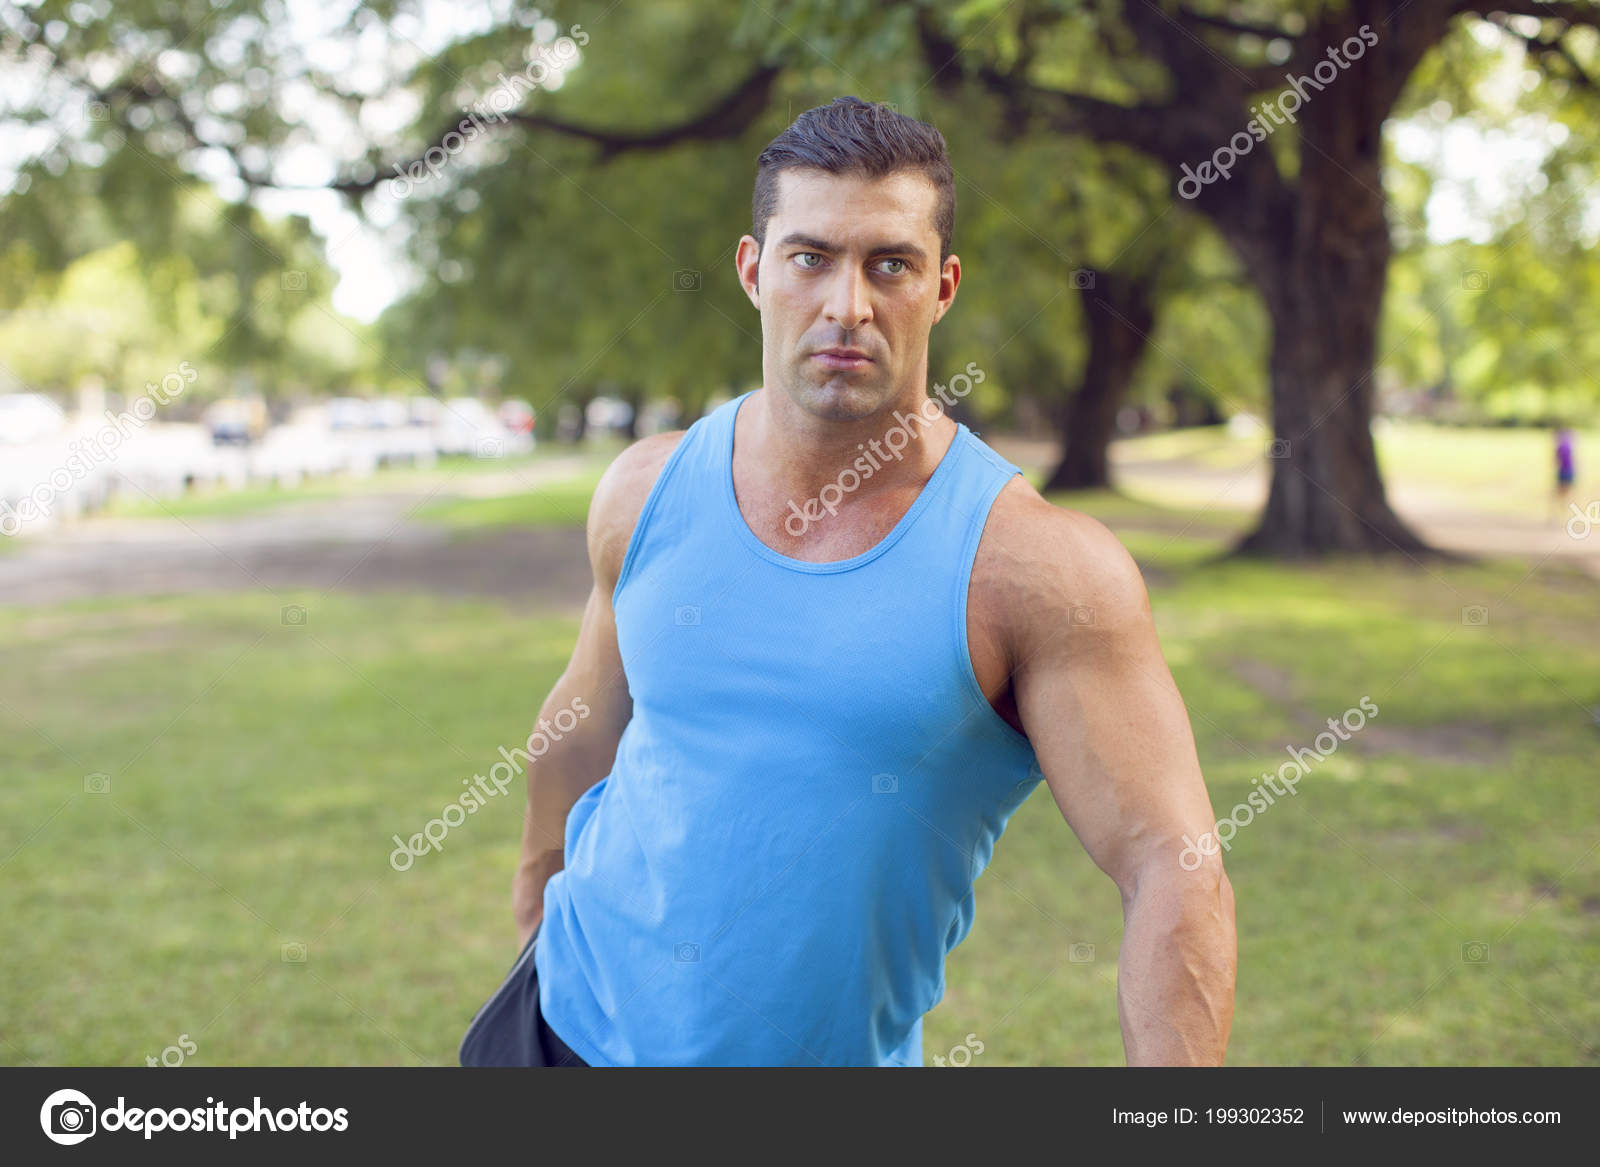 67ddf8c88ec20 Young Athletic Muscular Man Blue Tank Top Outdoors — Stock Photo ...